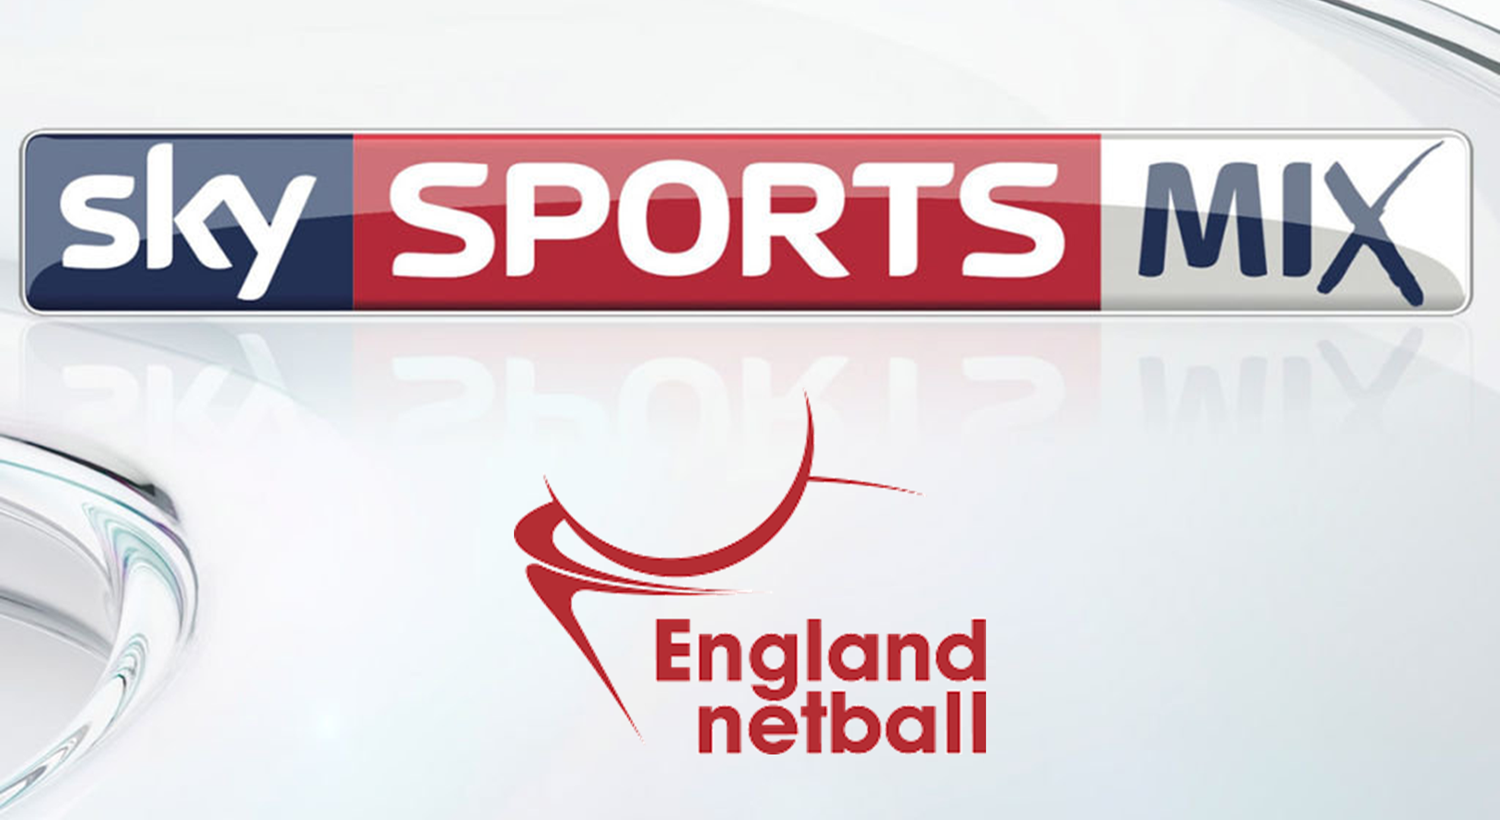 Sky Sports announce exciting 4 year broadcasting deal with England Netball